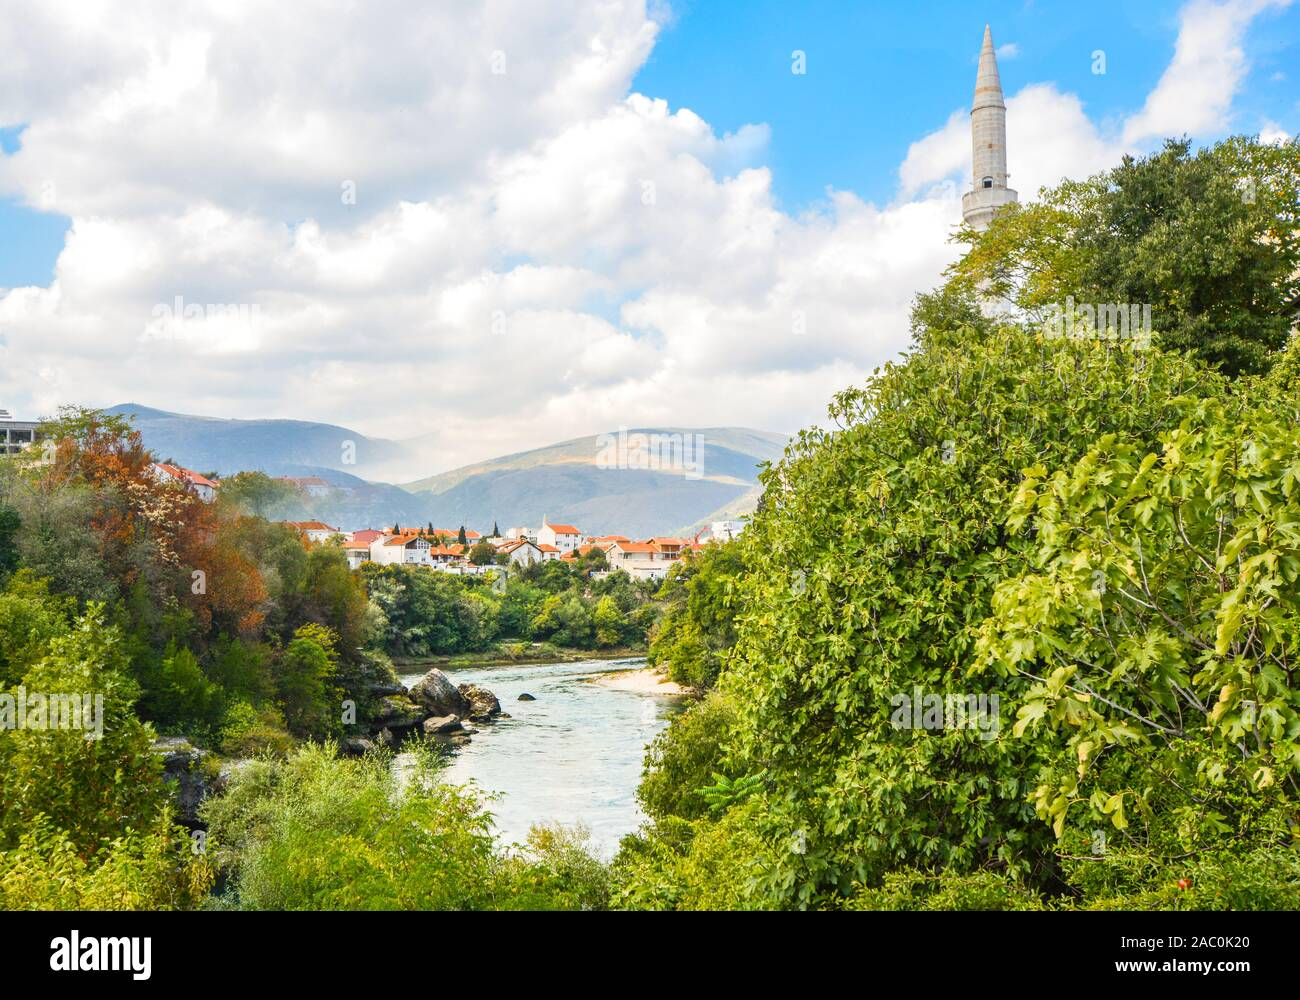 The river Neretva flows by the ancient wall surrounding the old town section of Mostar, Bosnia Stock Photo